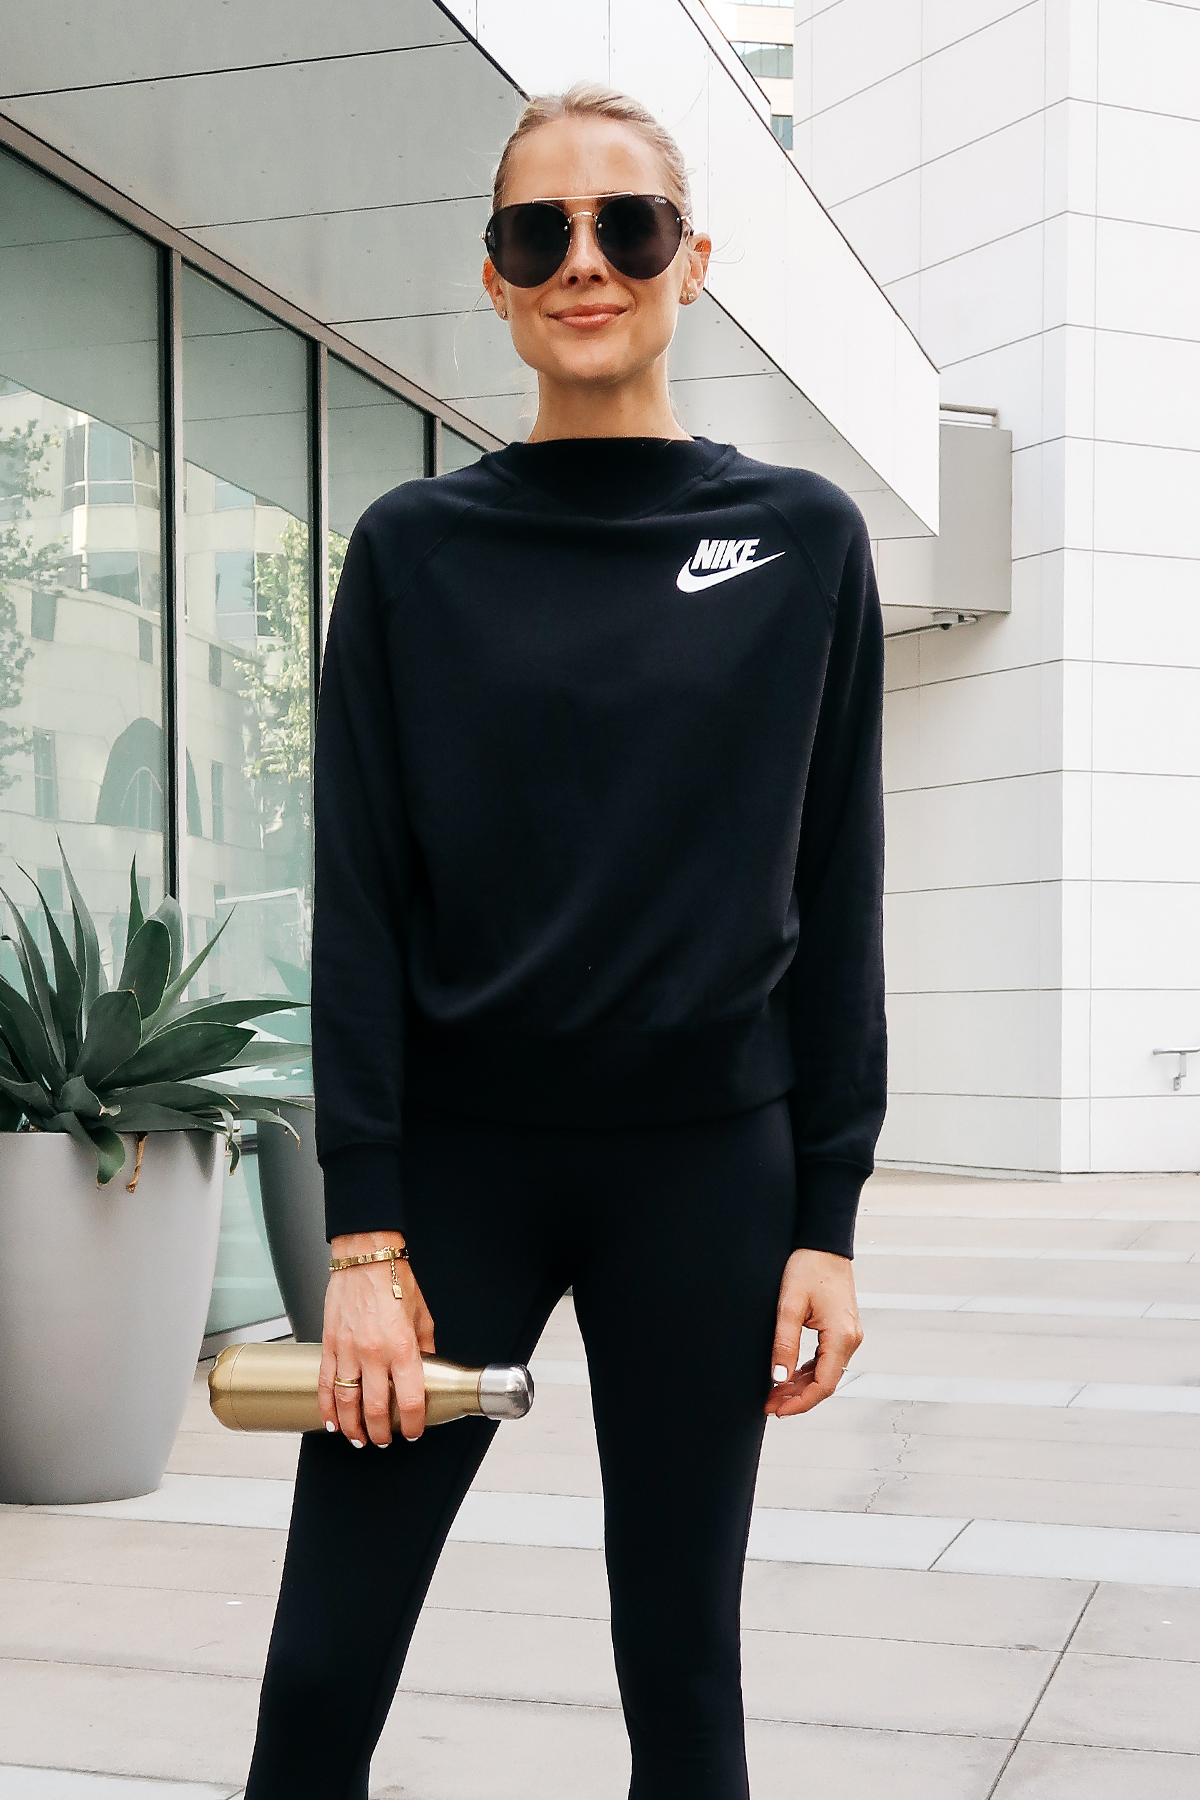 Blonde Woman Wearing Nordstrom Anniversary Sale Nike Sweatshirt Zella Black Leggings Aviator Sunglasses Fashion Jackson San Diego Blogger Fashion Blogger Street Style